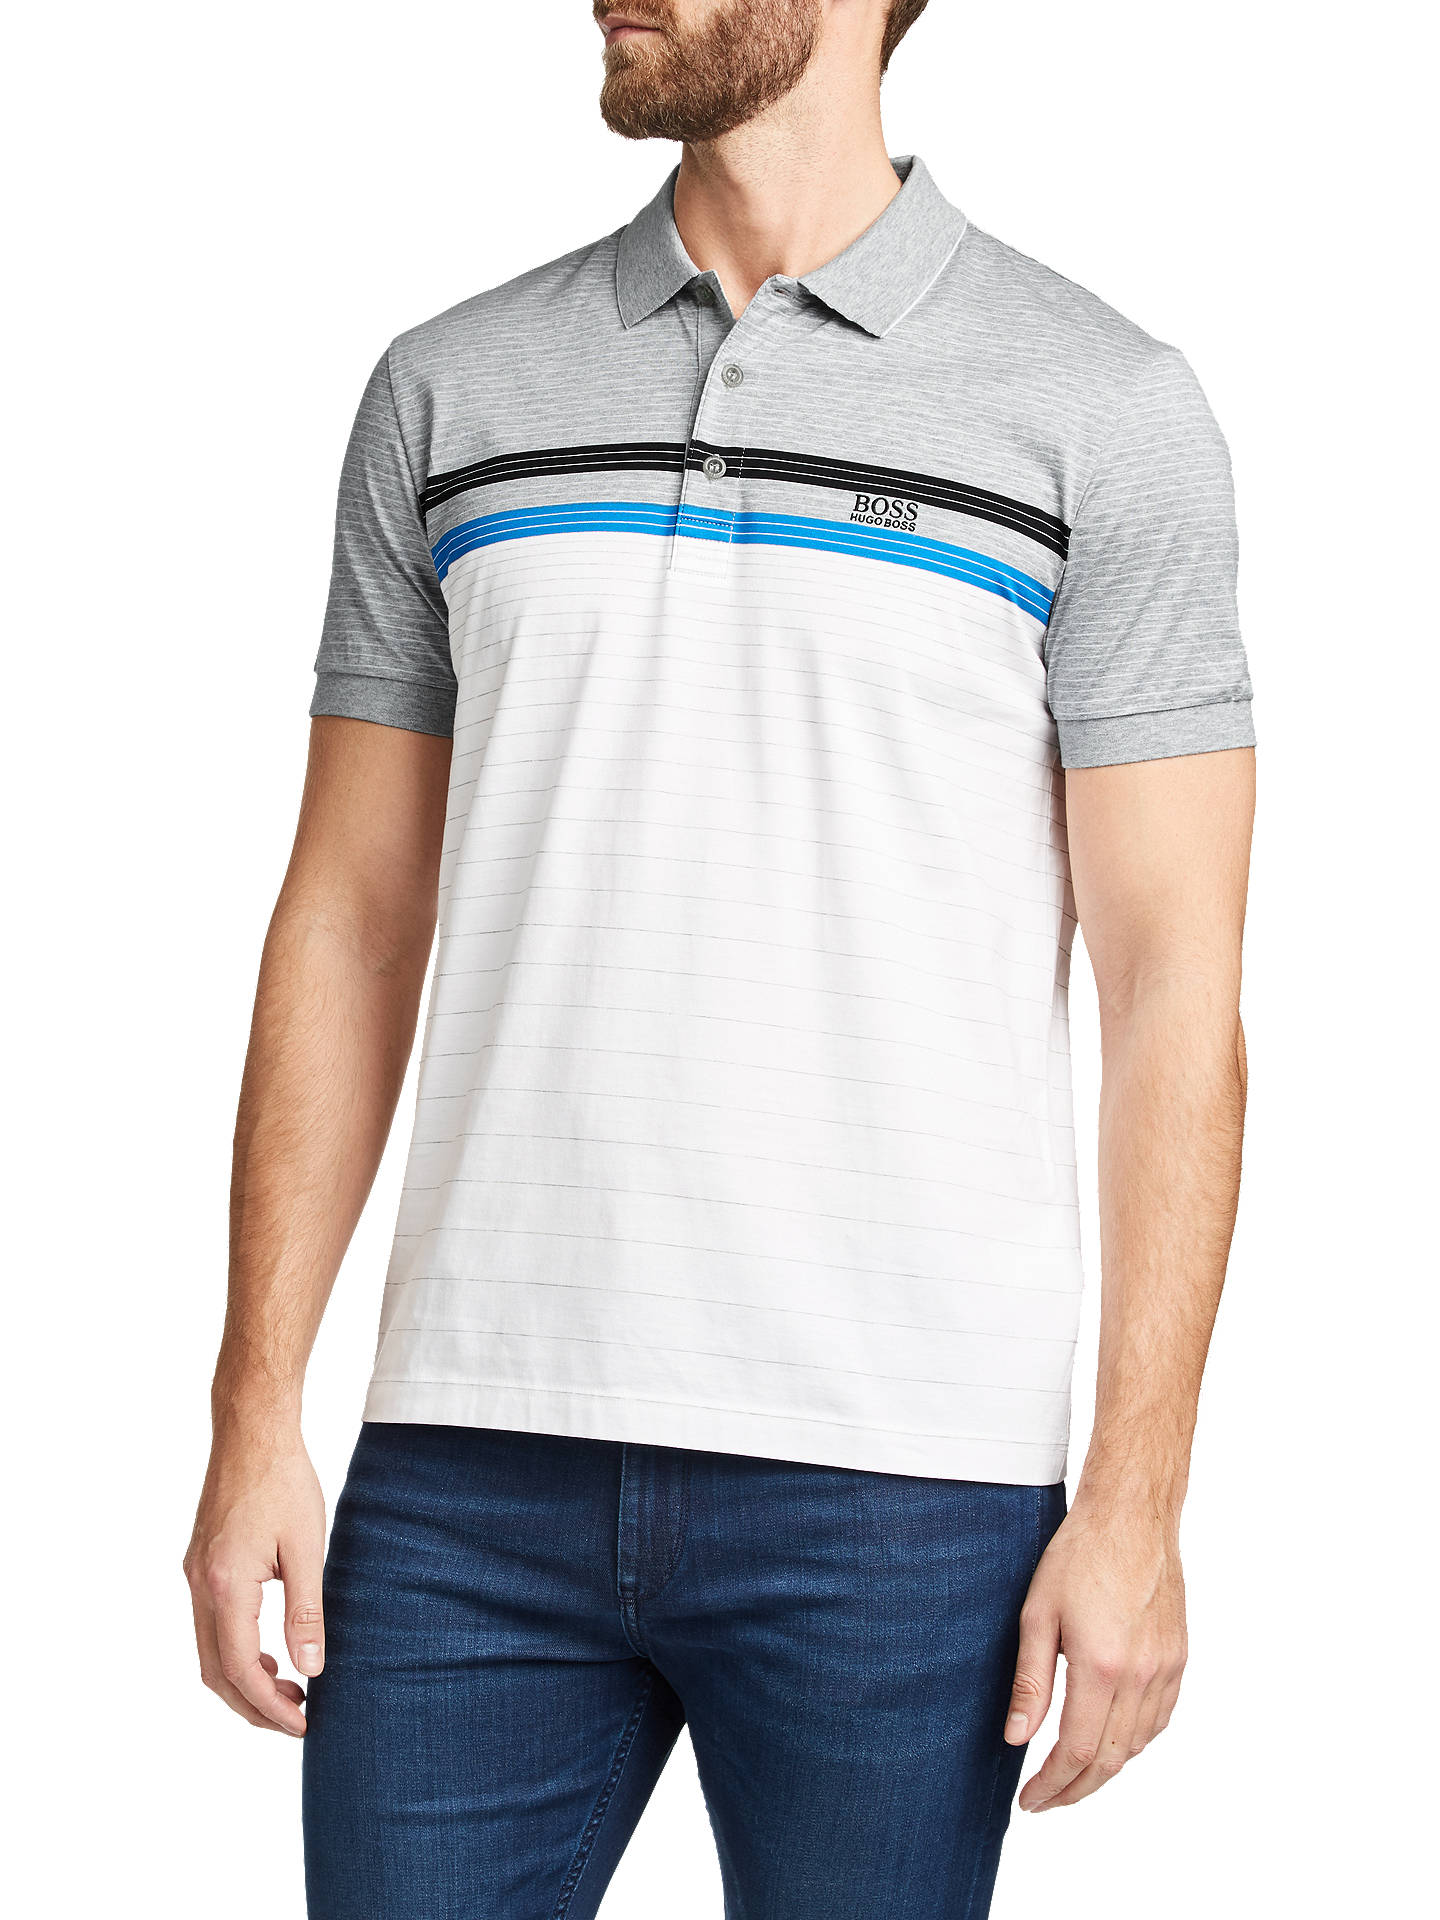 BuyBOSS Paddy Stripe Polo Shirt, White, S Online at johnlewis.com